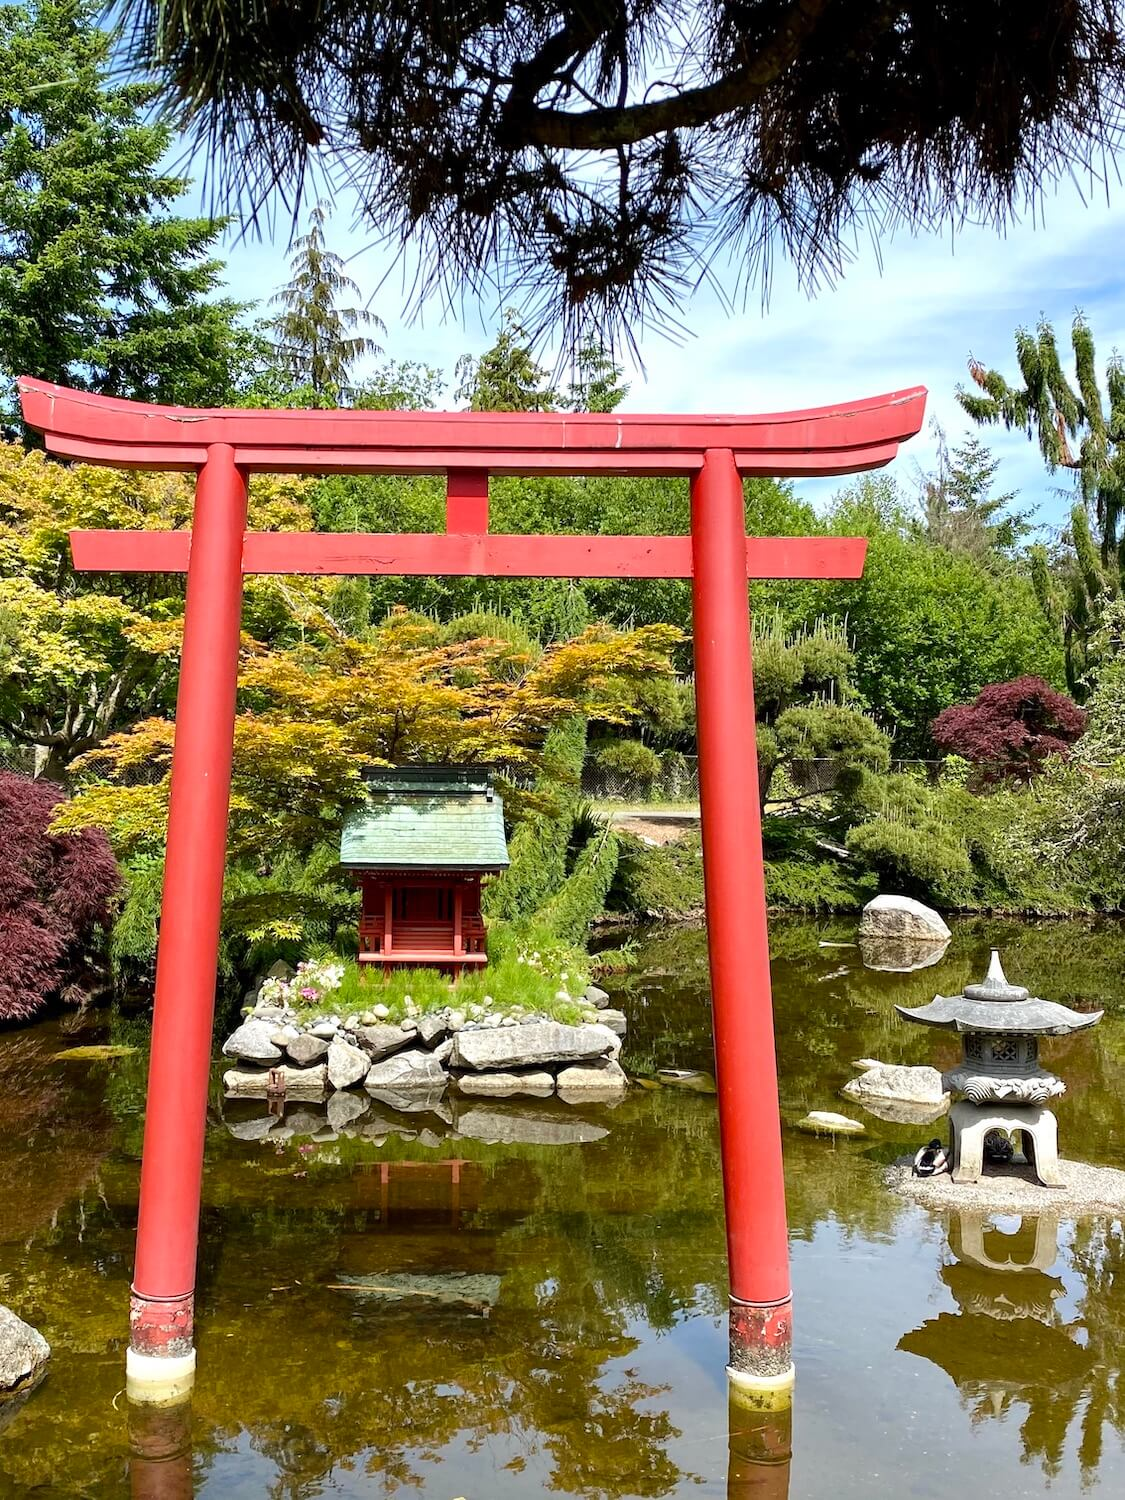 A bright red gate stands in a pond filled with murky brownish water while two ducks hang out next to a stone lantern standing on gravel near the water level.  A little island made of stones holds a tiny red temple with green tile roof.